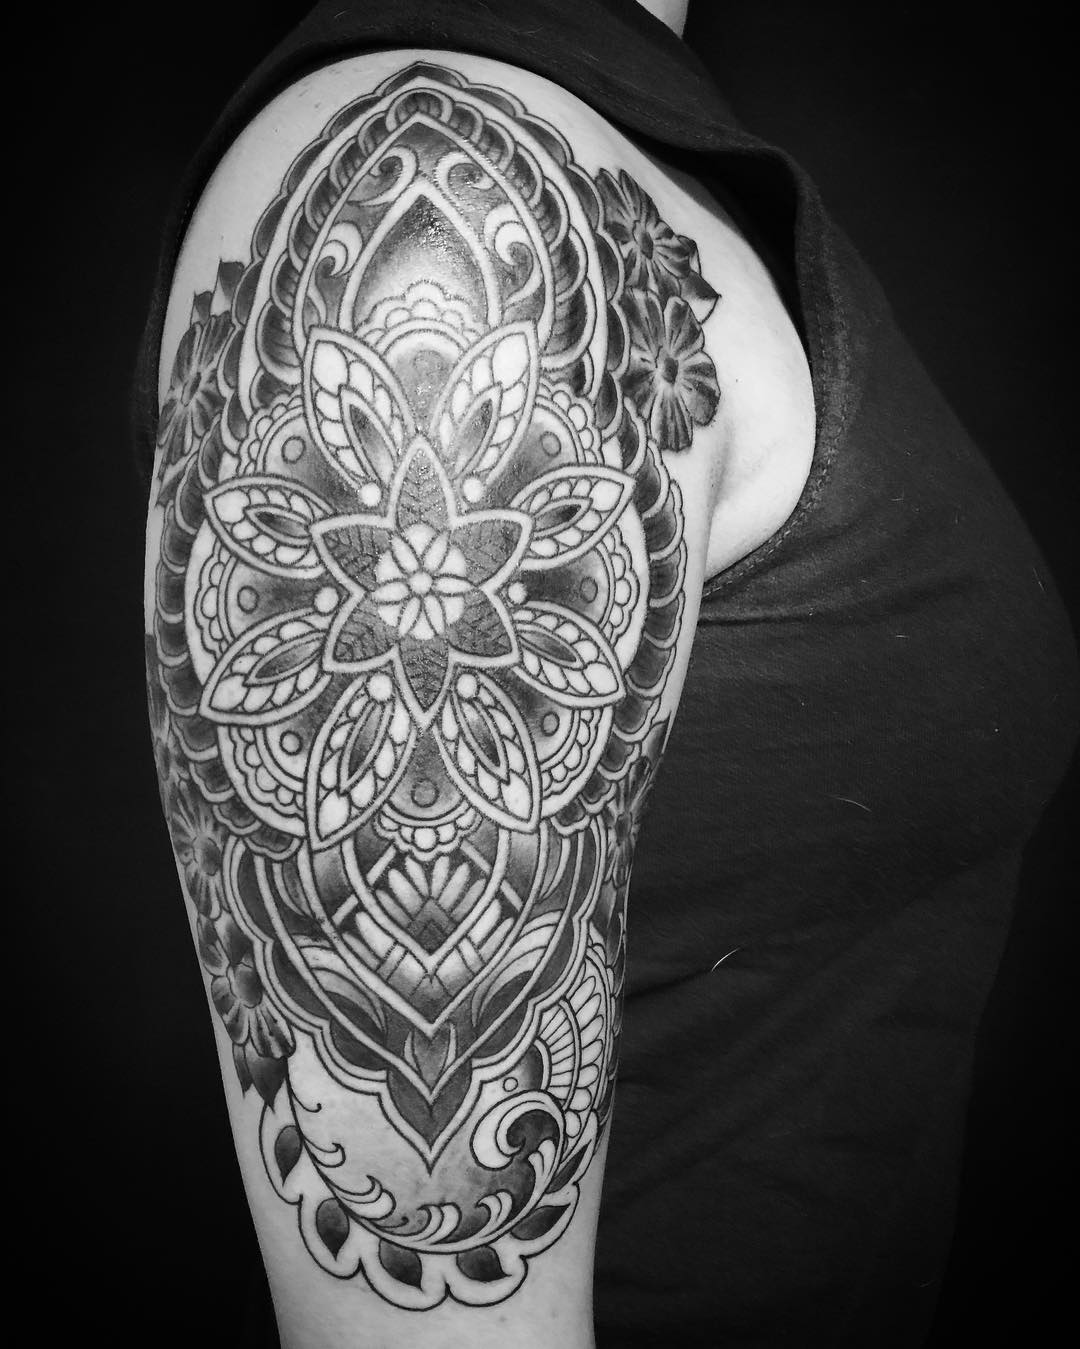 Mandala Tattoo on Arms